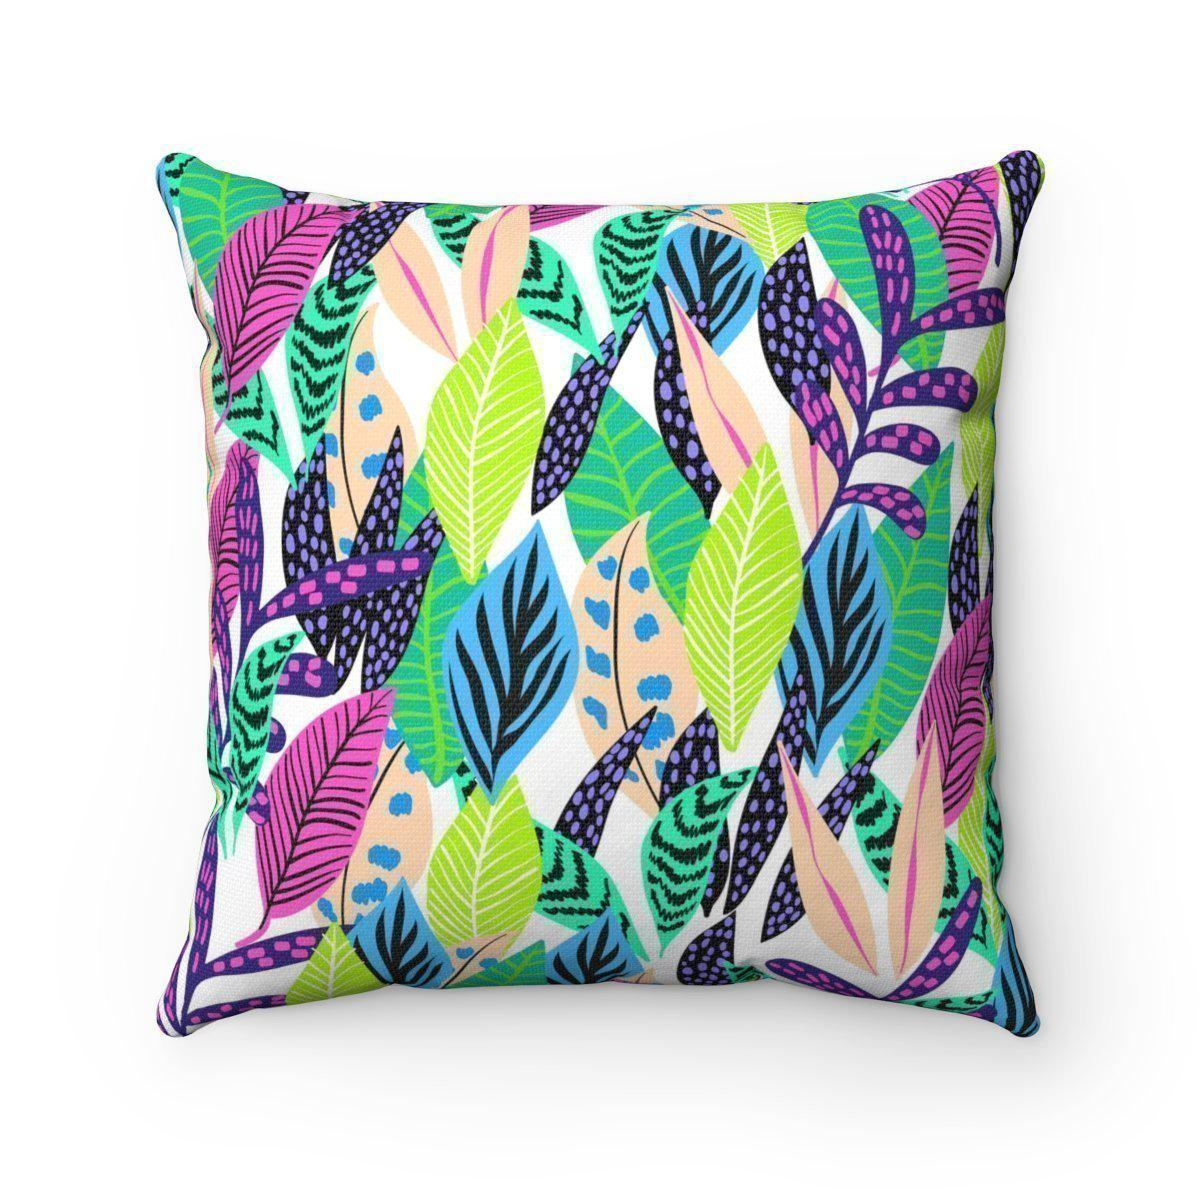 Modern tropical leaves jungle decorative cushion cover-Home Decor - Decorative Accents - Pillows & Throws - Decorative Pillows-Maison d'Elite-Très Elite